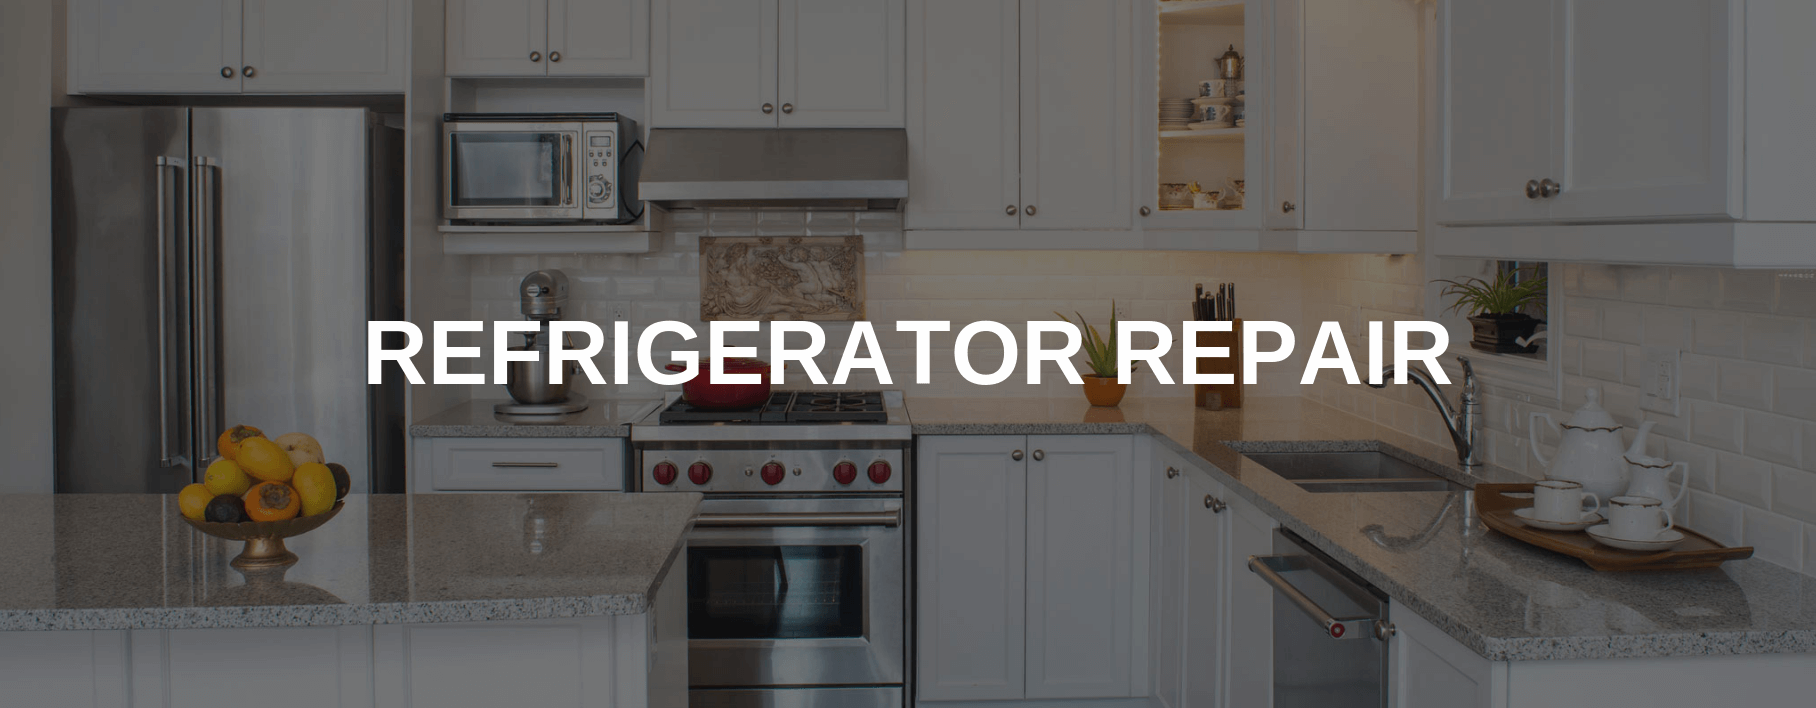 refrigerator repair league city